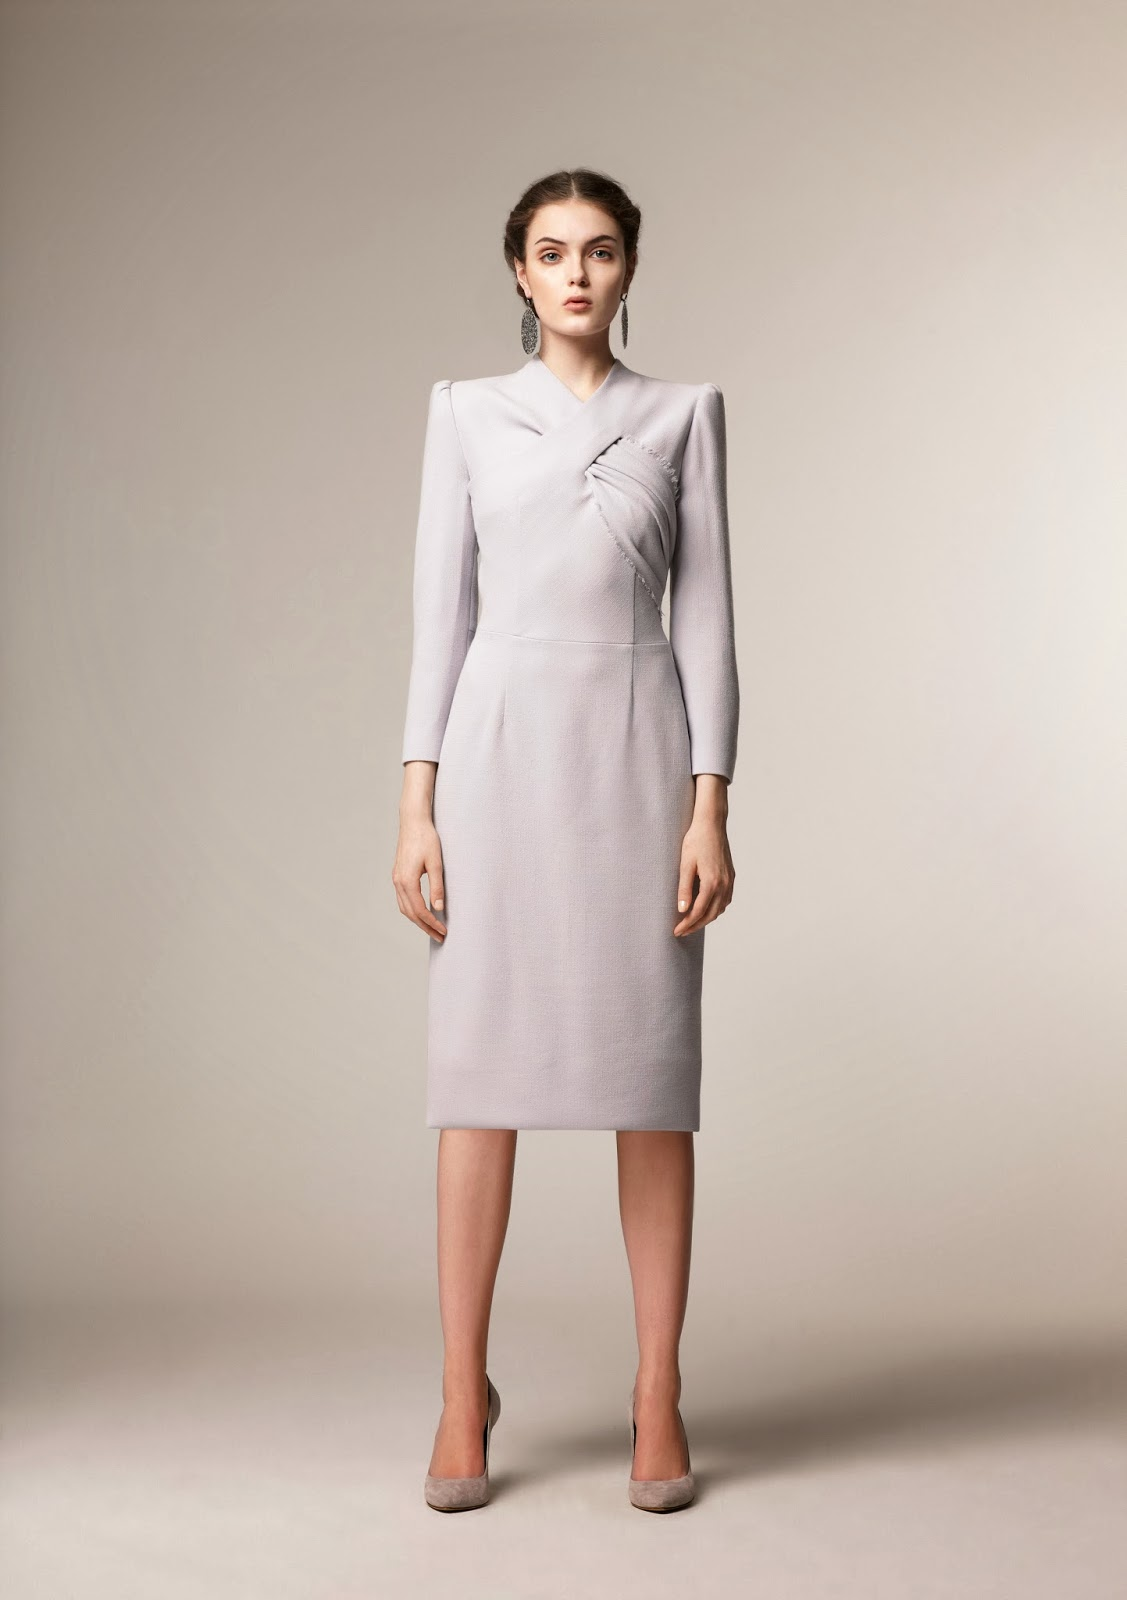 Modest midi dress with sleeves Modest pencil skirt